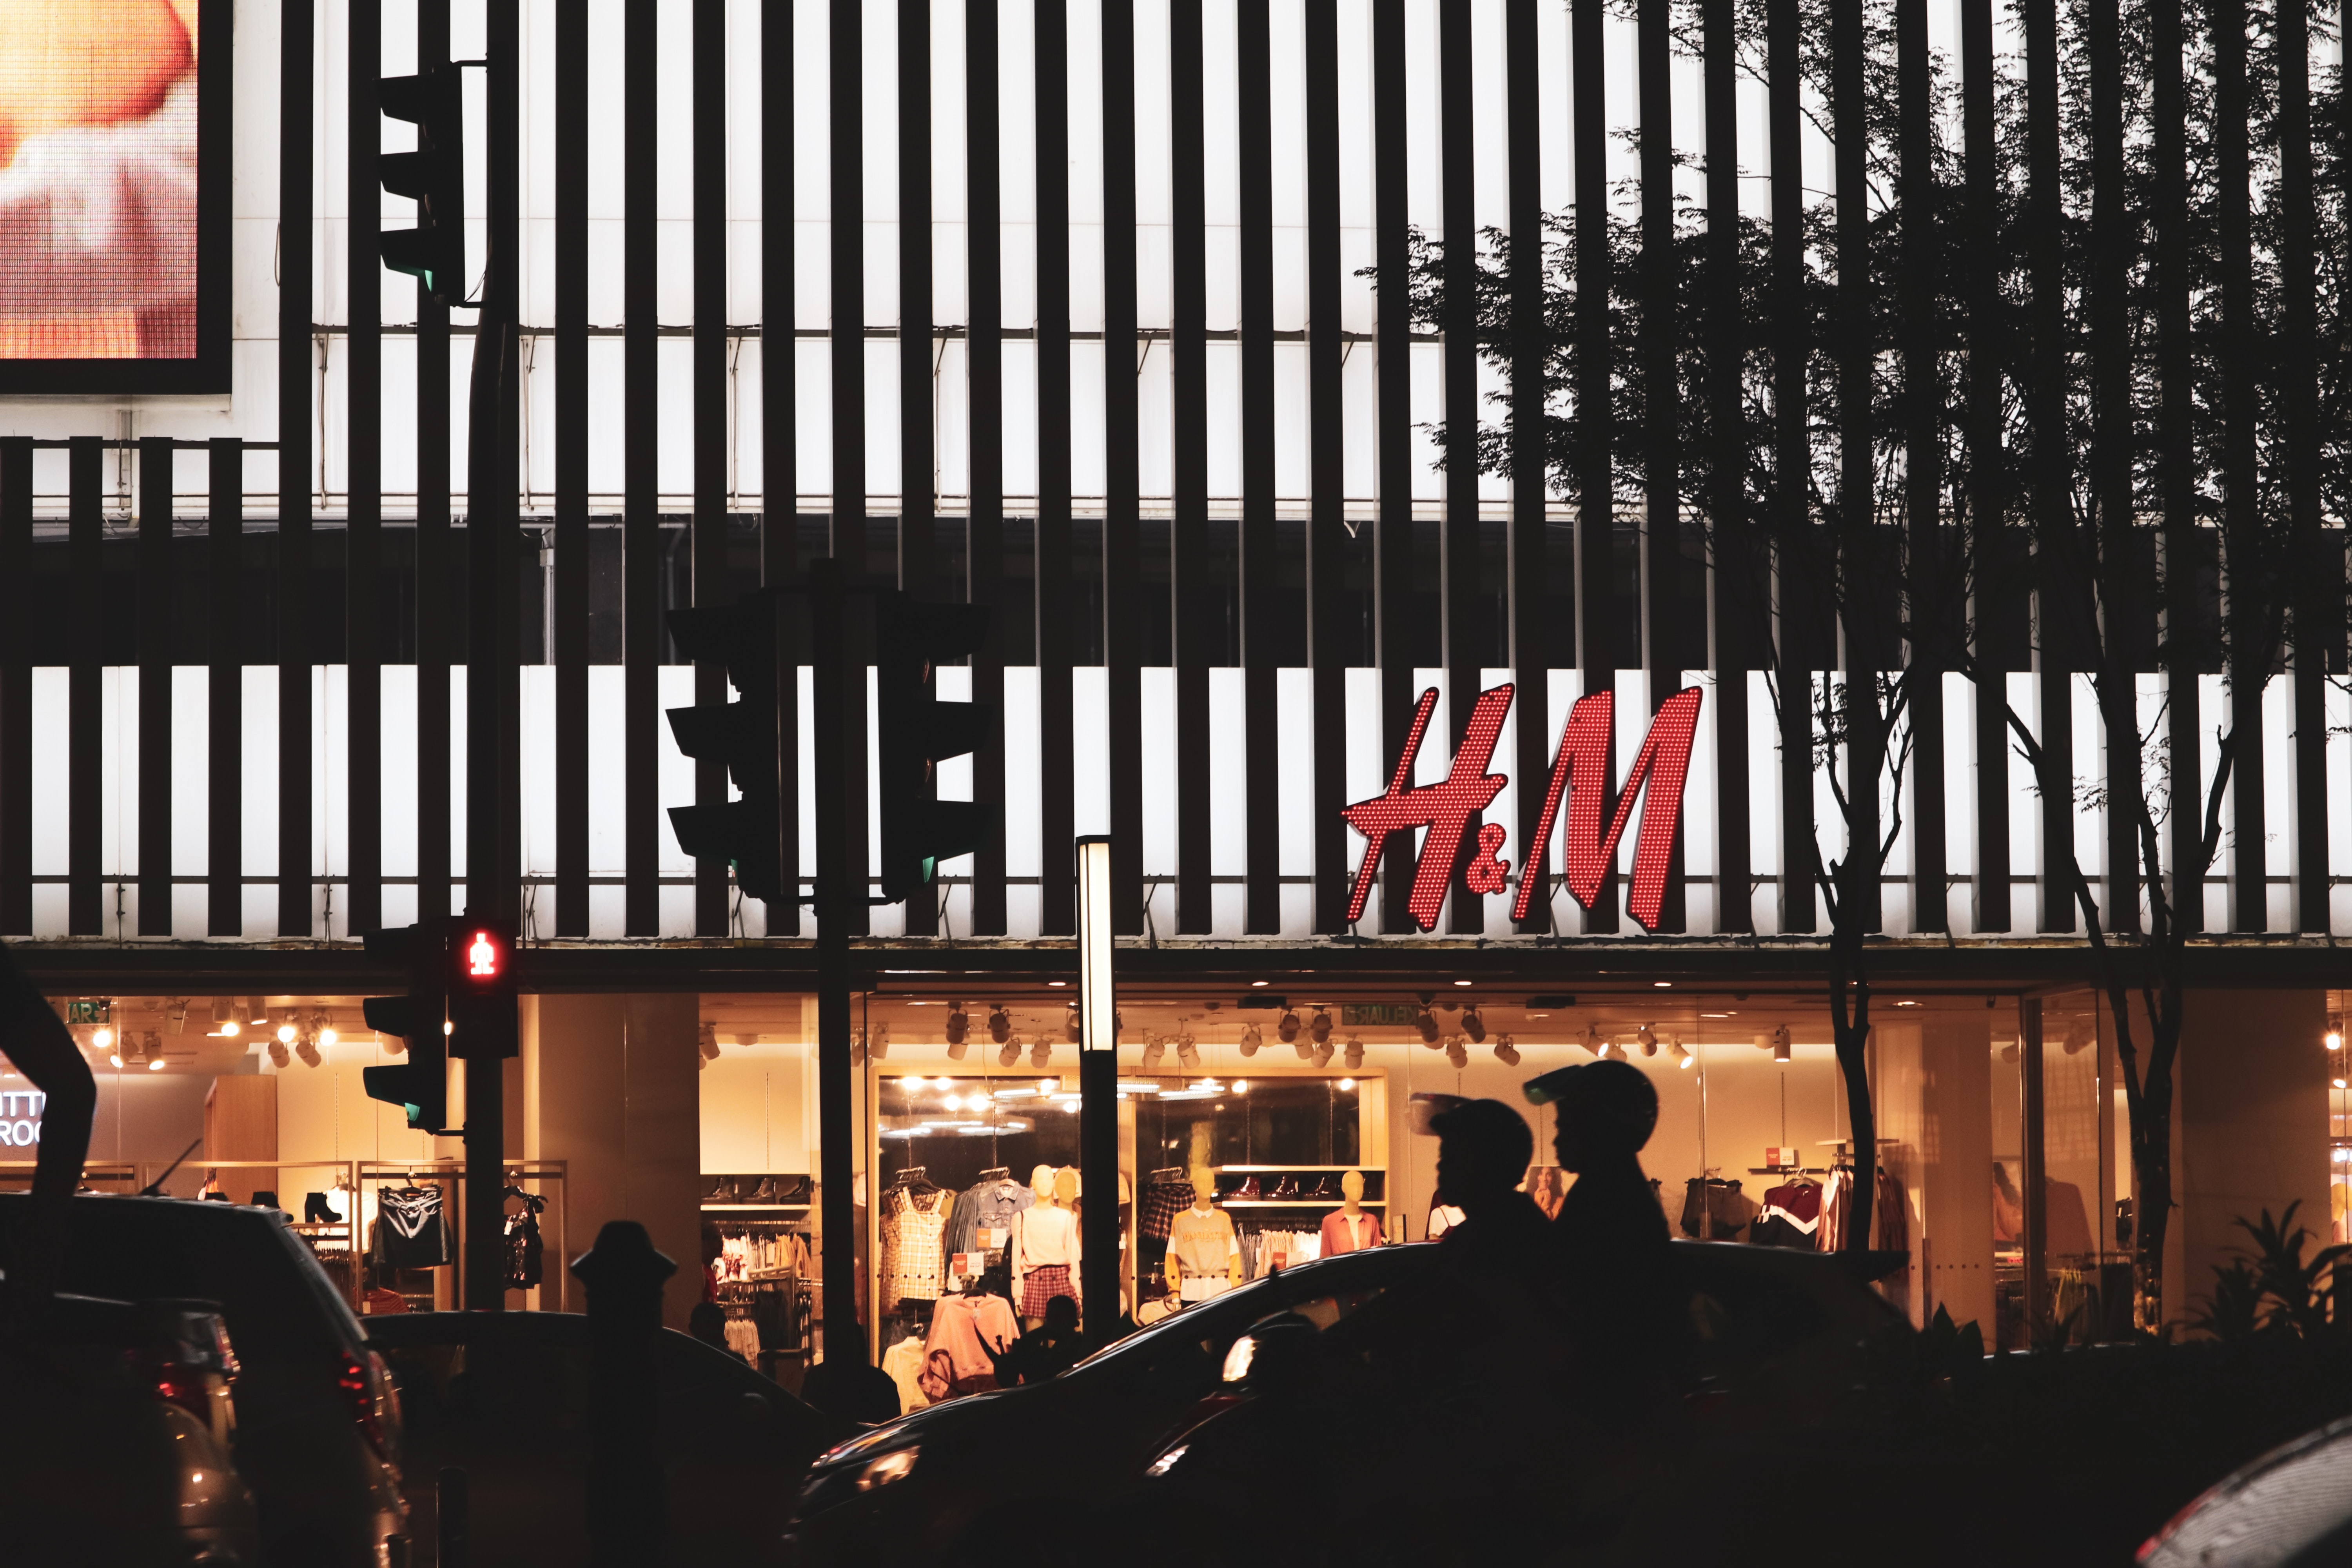 H&M store shot in the city at night